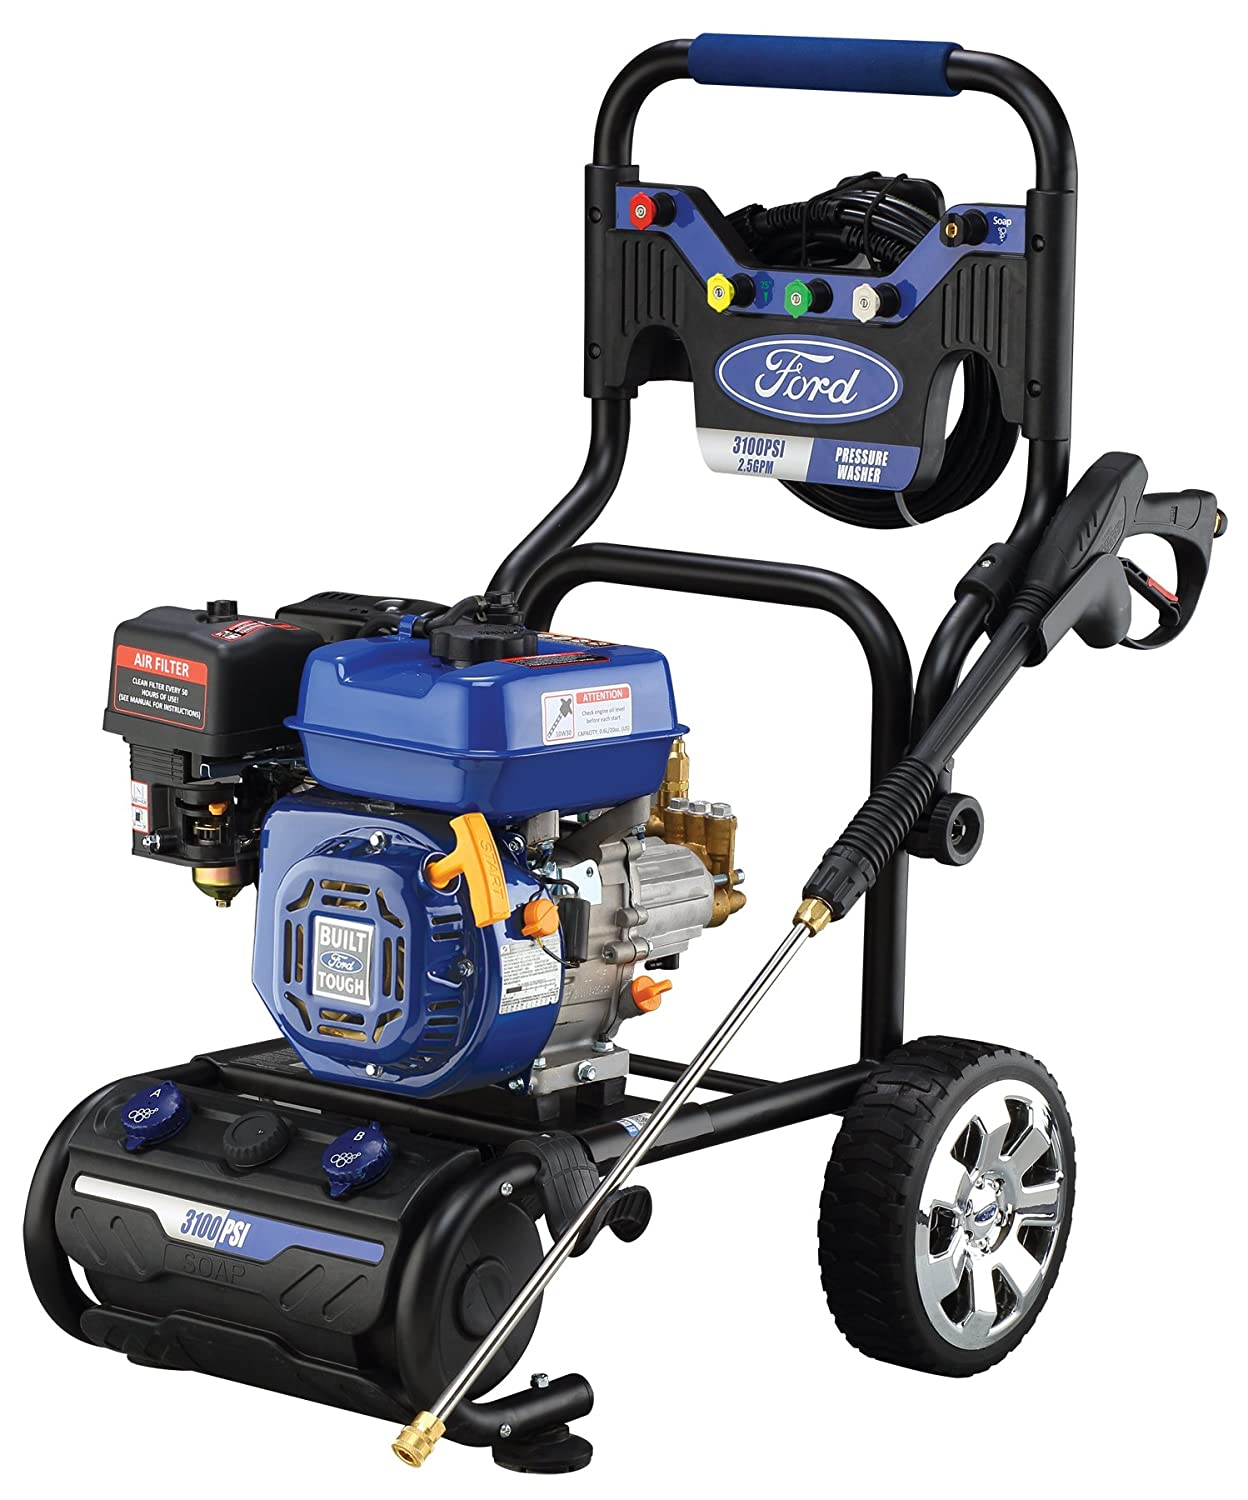 ford pressure washer review